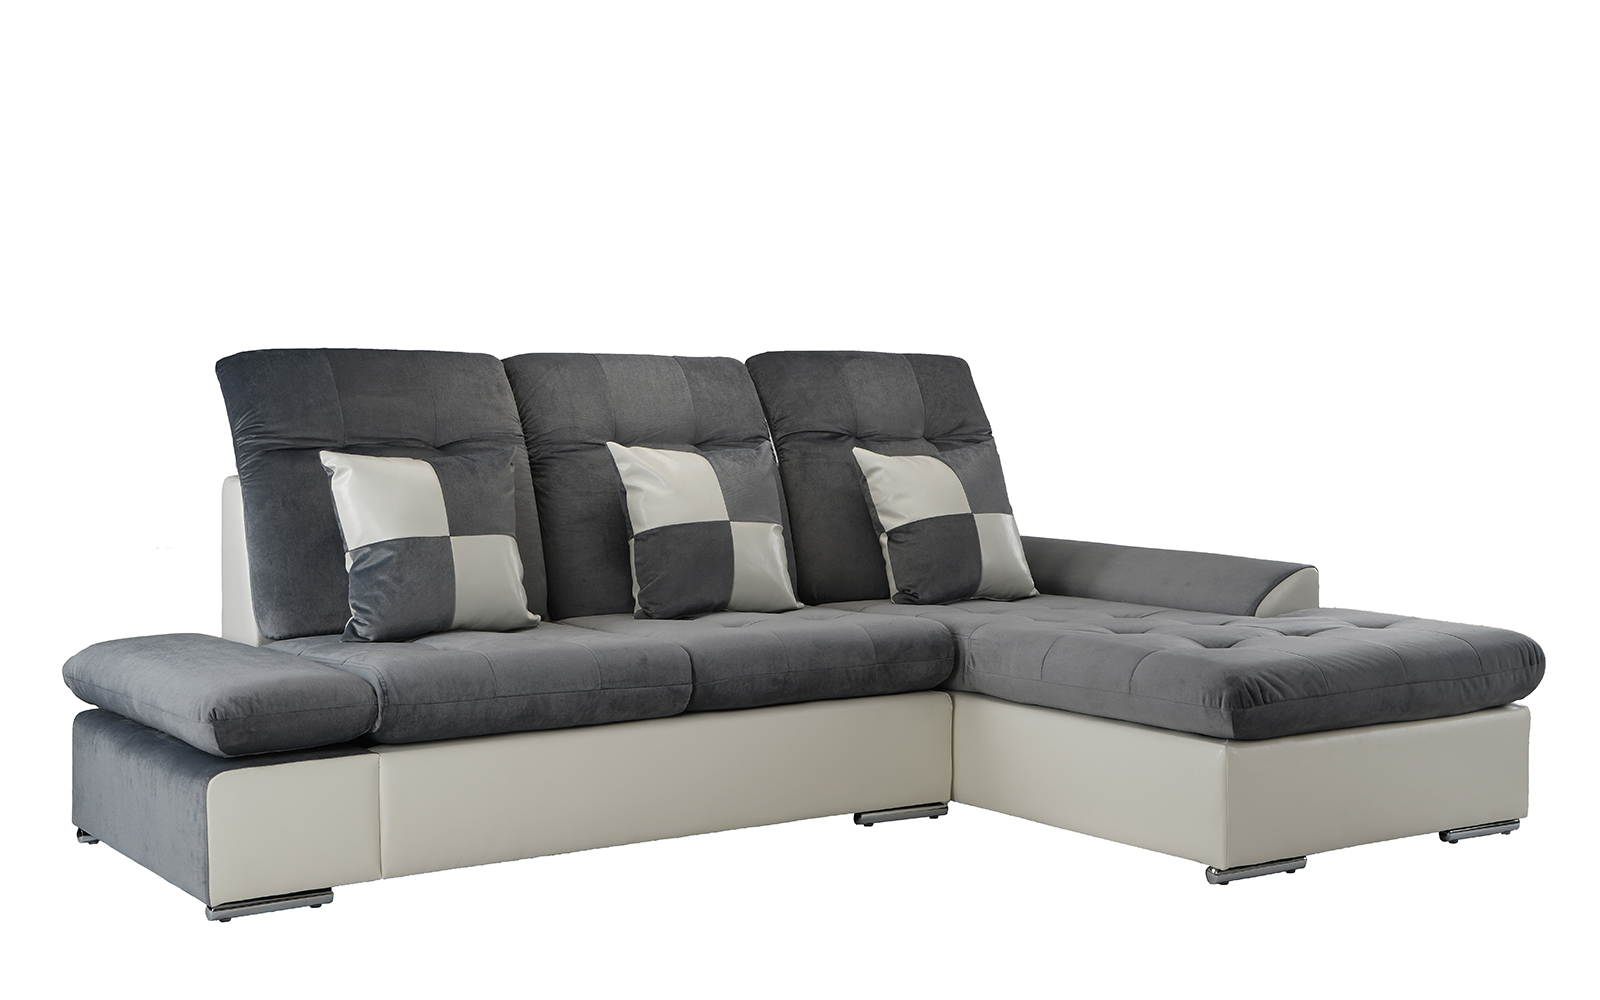 Contemporary Microfiber Sectional Sofa With Chaise In Dark Grey